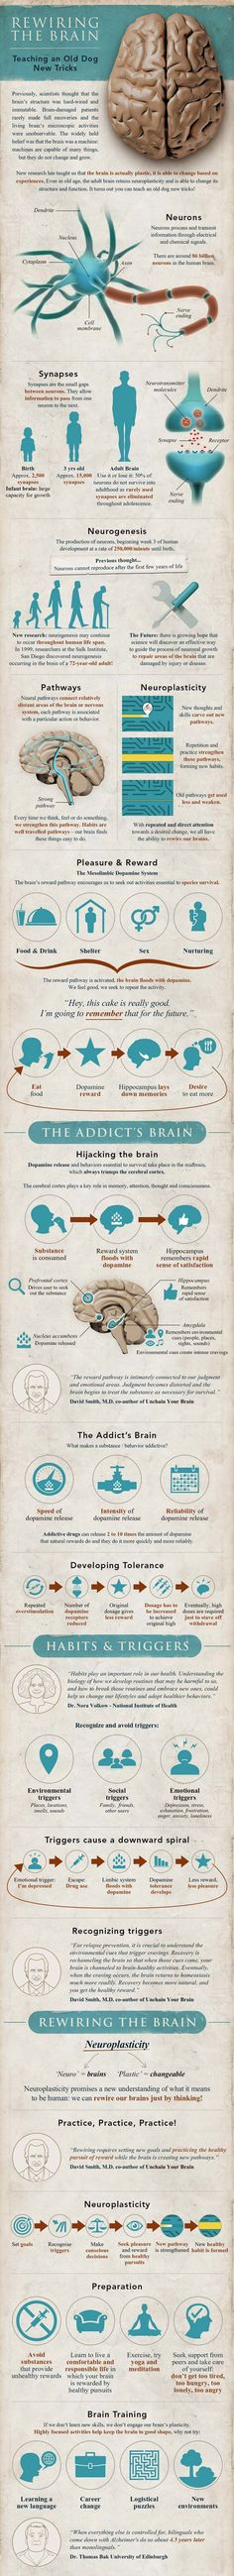 Infographic Introduction to Neuroplasticity and Cognitive Therapy ~ ~ Did you know you can rewire your brain? Neuroscientific breakthroughs are revealing fascinating new truths about how we can control our brains to create new positive neuropathways Therapy Tools, Art Therapy, Trauma Therapy, Brain Science, Science Education, Health Education, Life Science, Computer Science, Physical Education